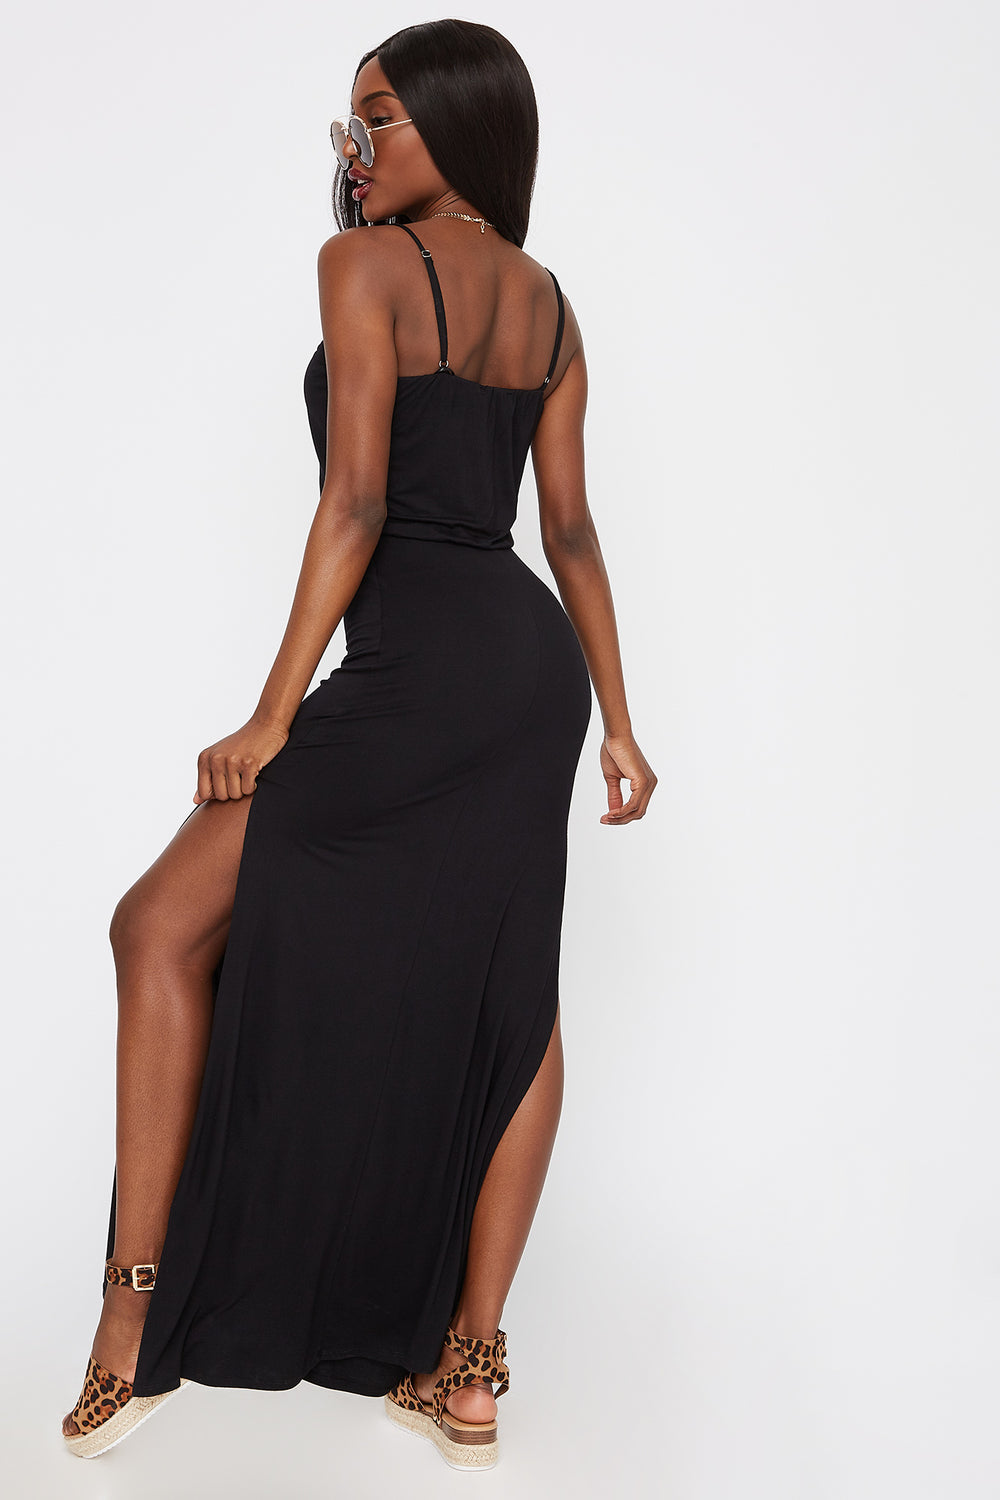 Scoop Neck Slit Maxi Dress Black